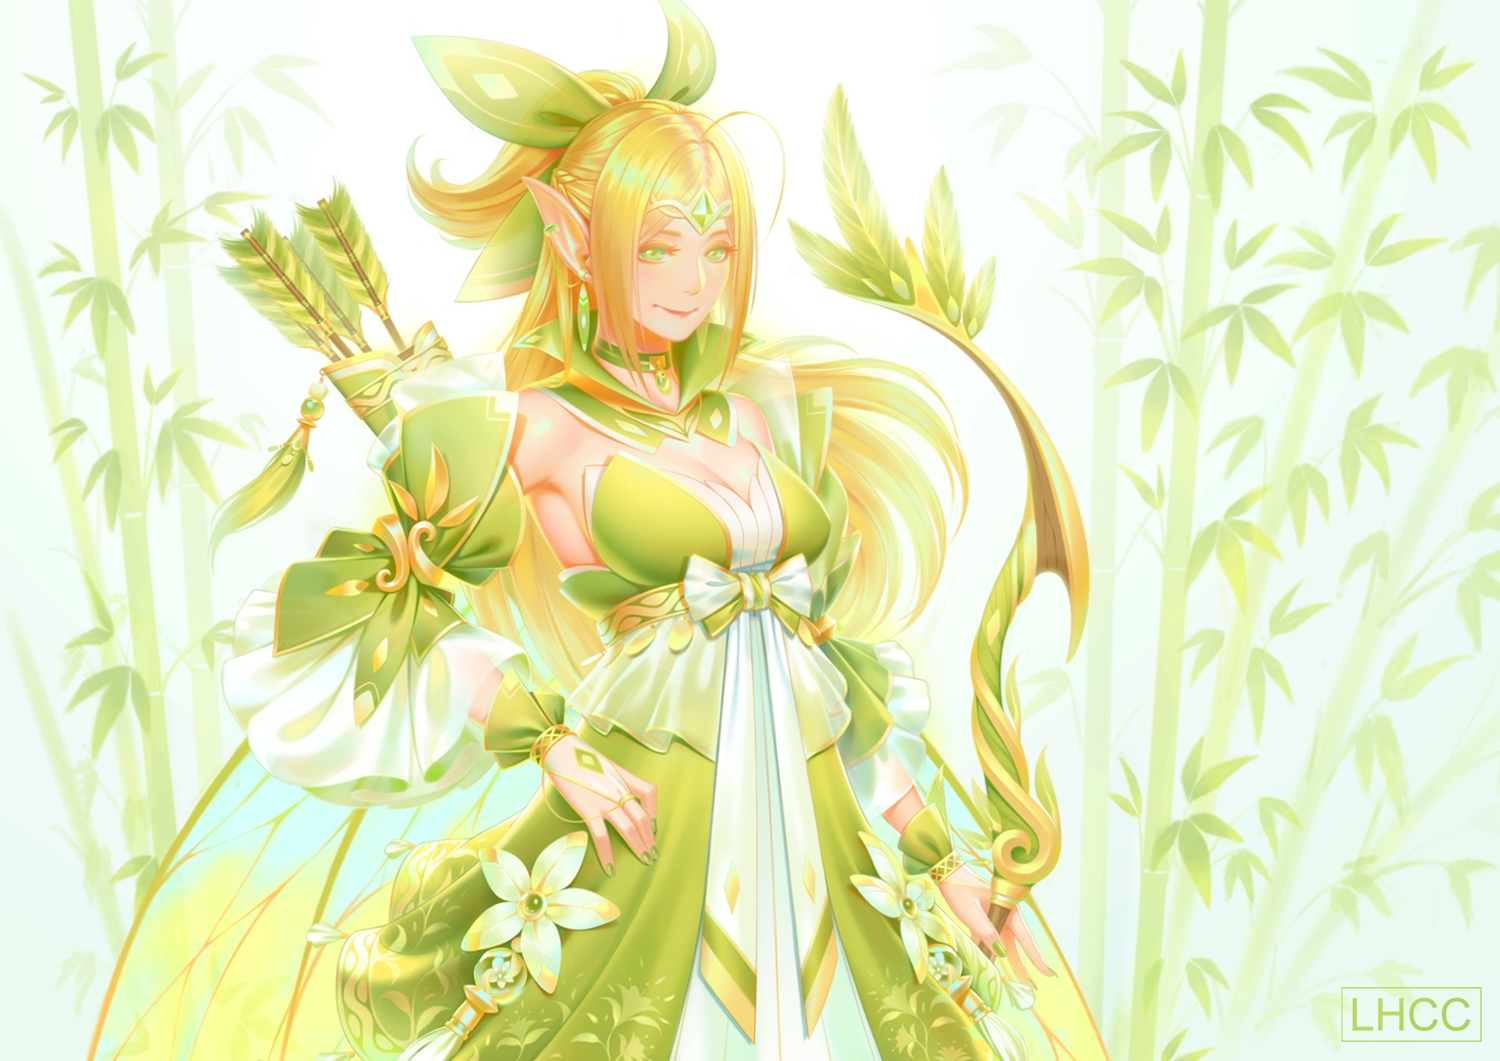 blonde_hair bow_(weapon) braids breasts cleavage green_eyes long_hair louishung original pointed_ears ponytail weapon